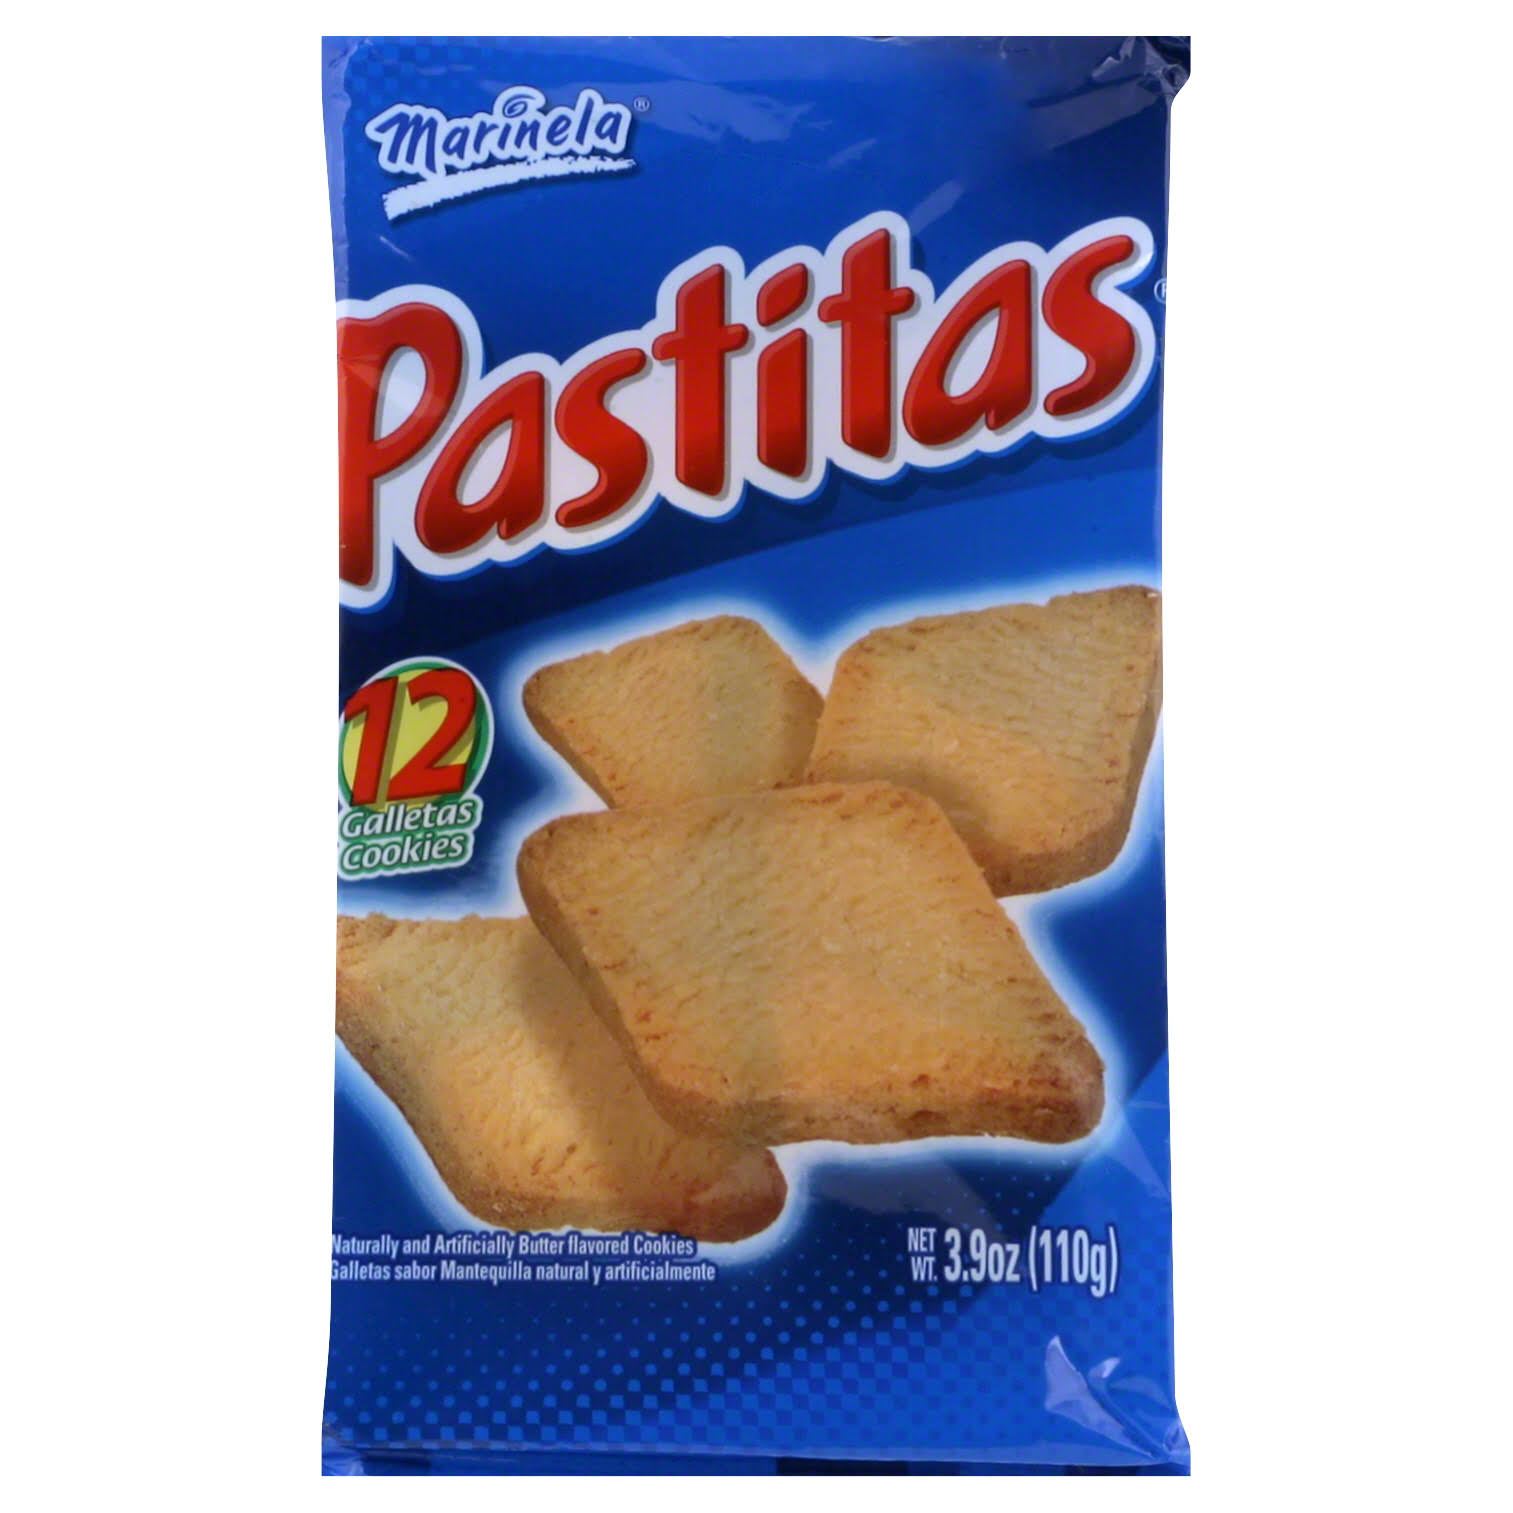 Marinela Pastitas Butter Cookies - 110g